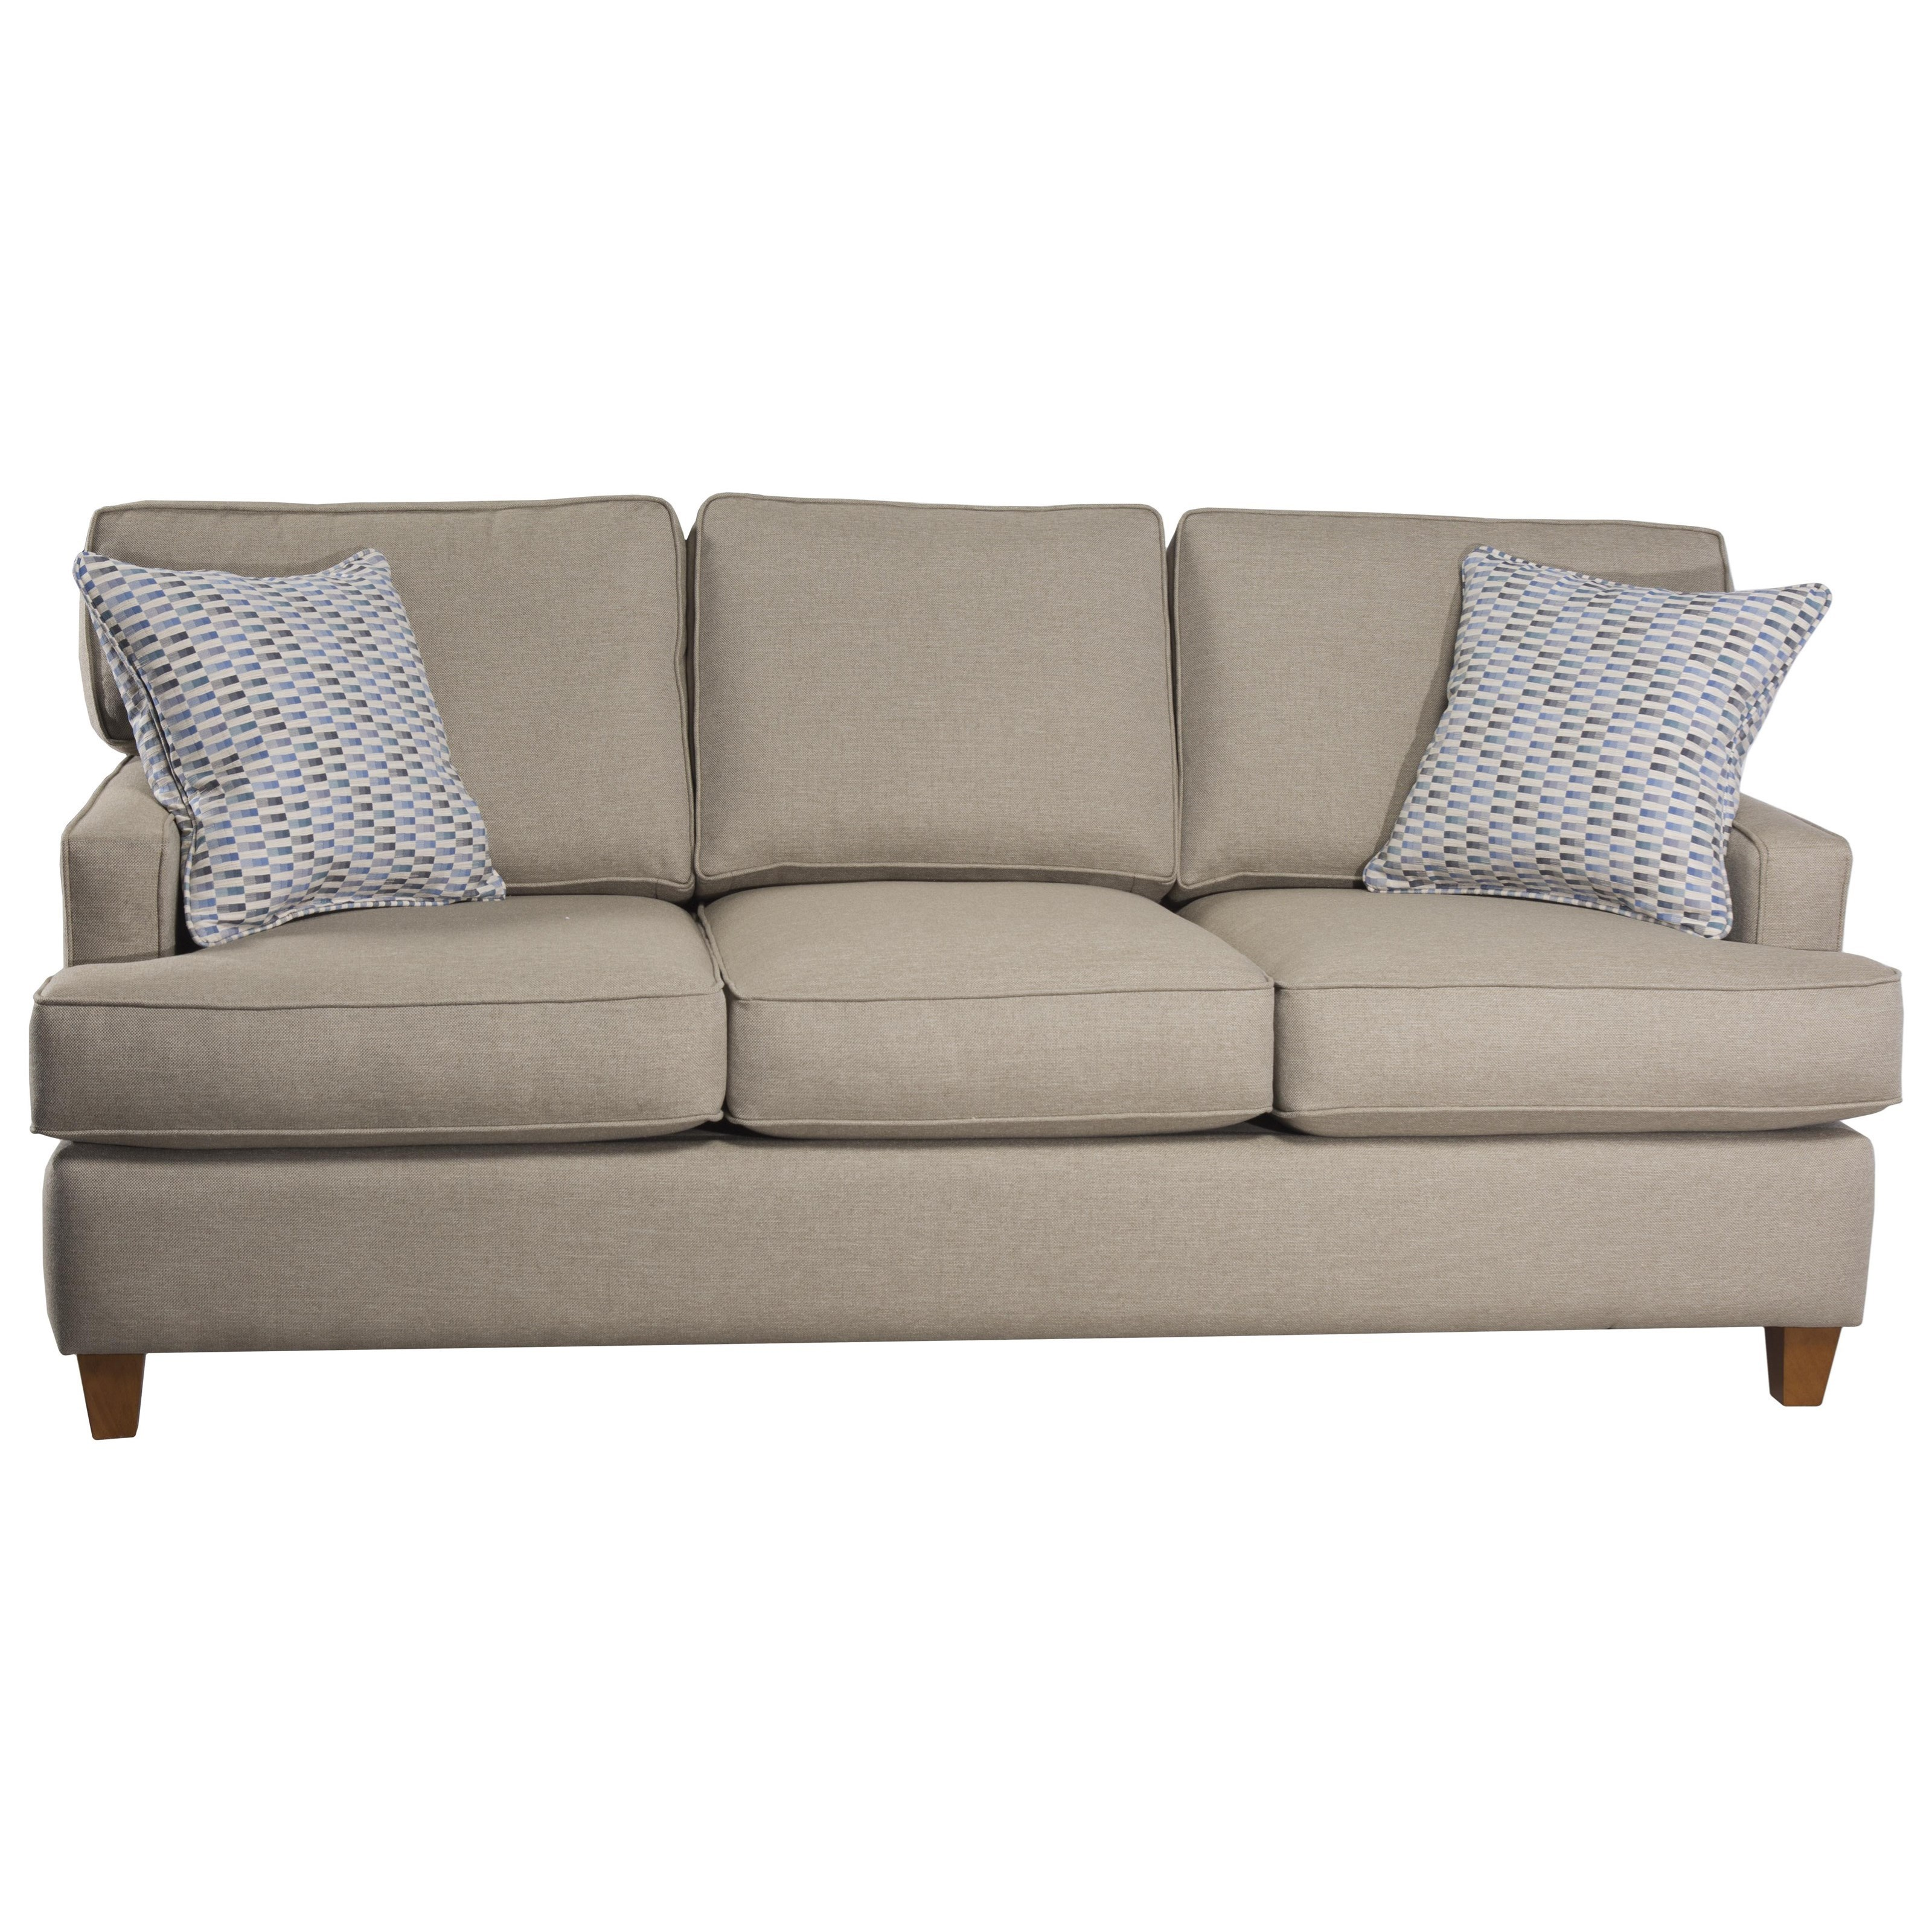 162 Queen Sleeper Sofa by Capris Furniture at Baer's Furniture